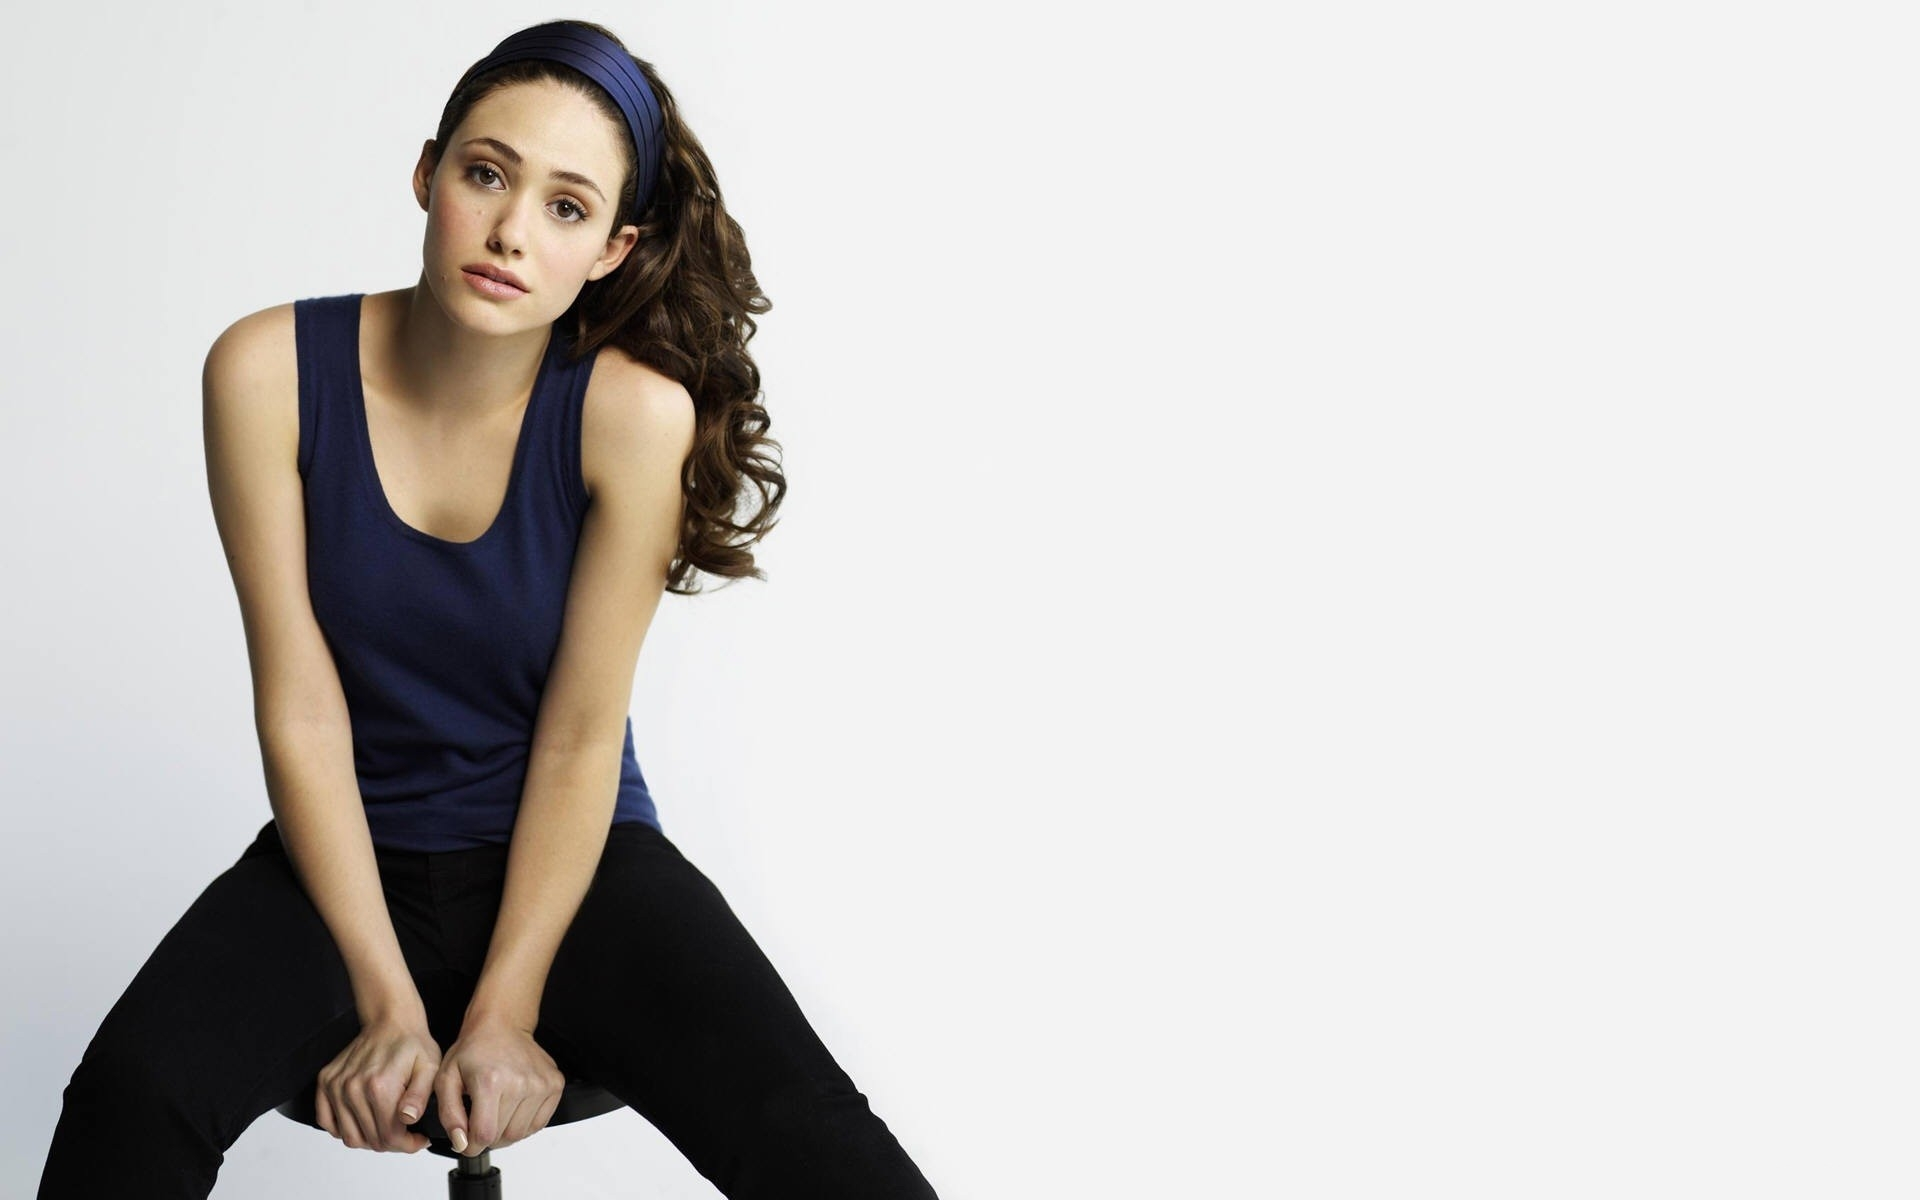 emmy rossum sublime wallpaper - photo #1